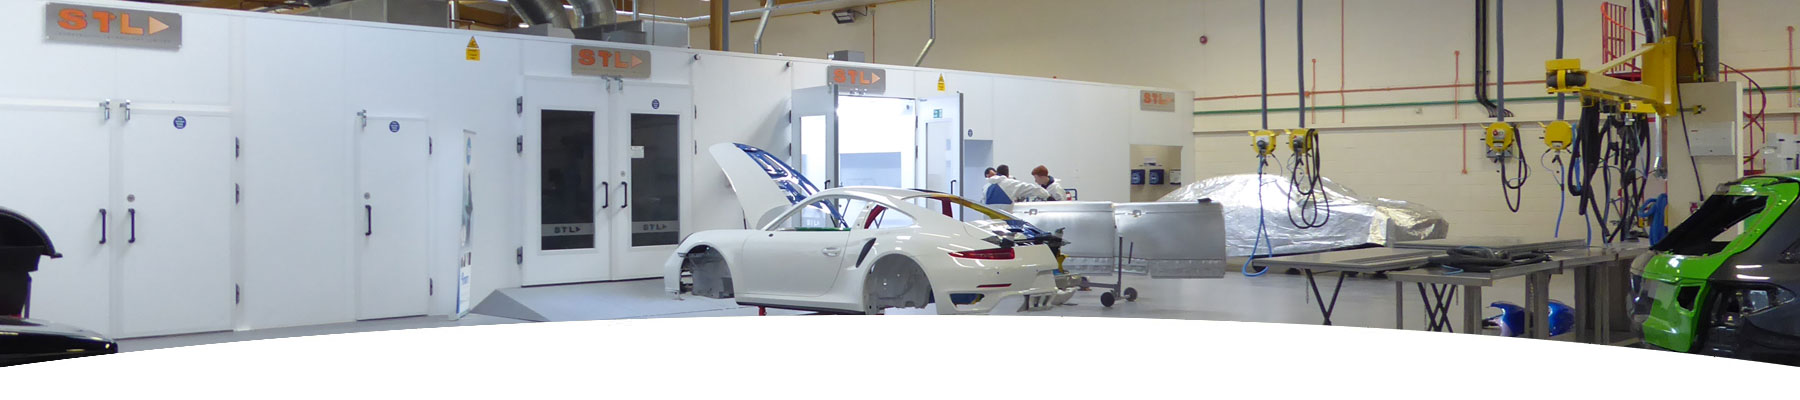 automotive-spraybooths-and-equipment-ITAS